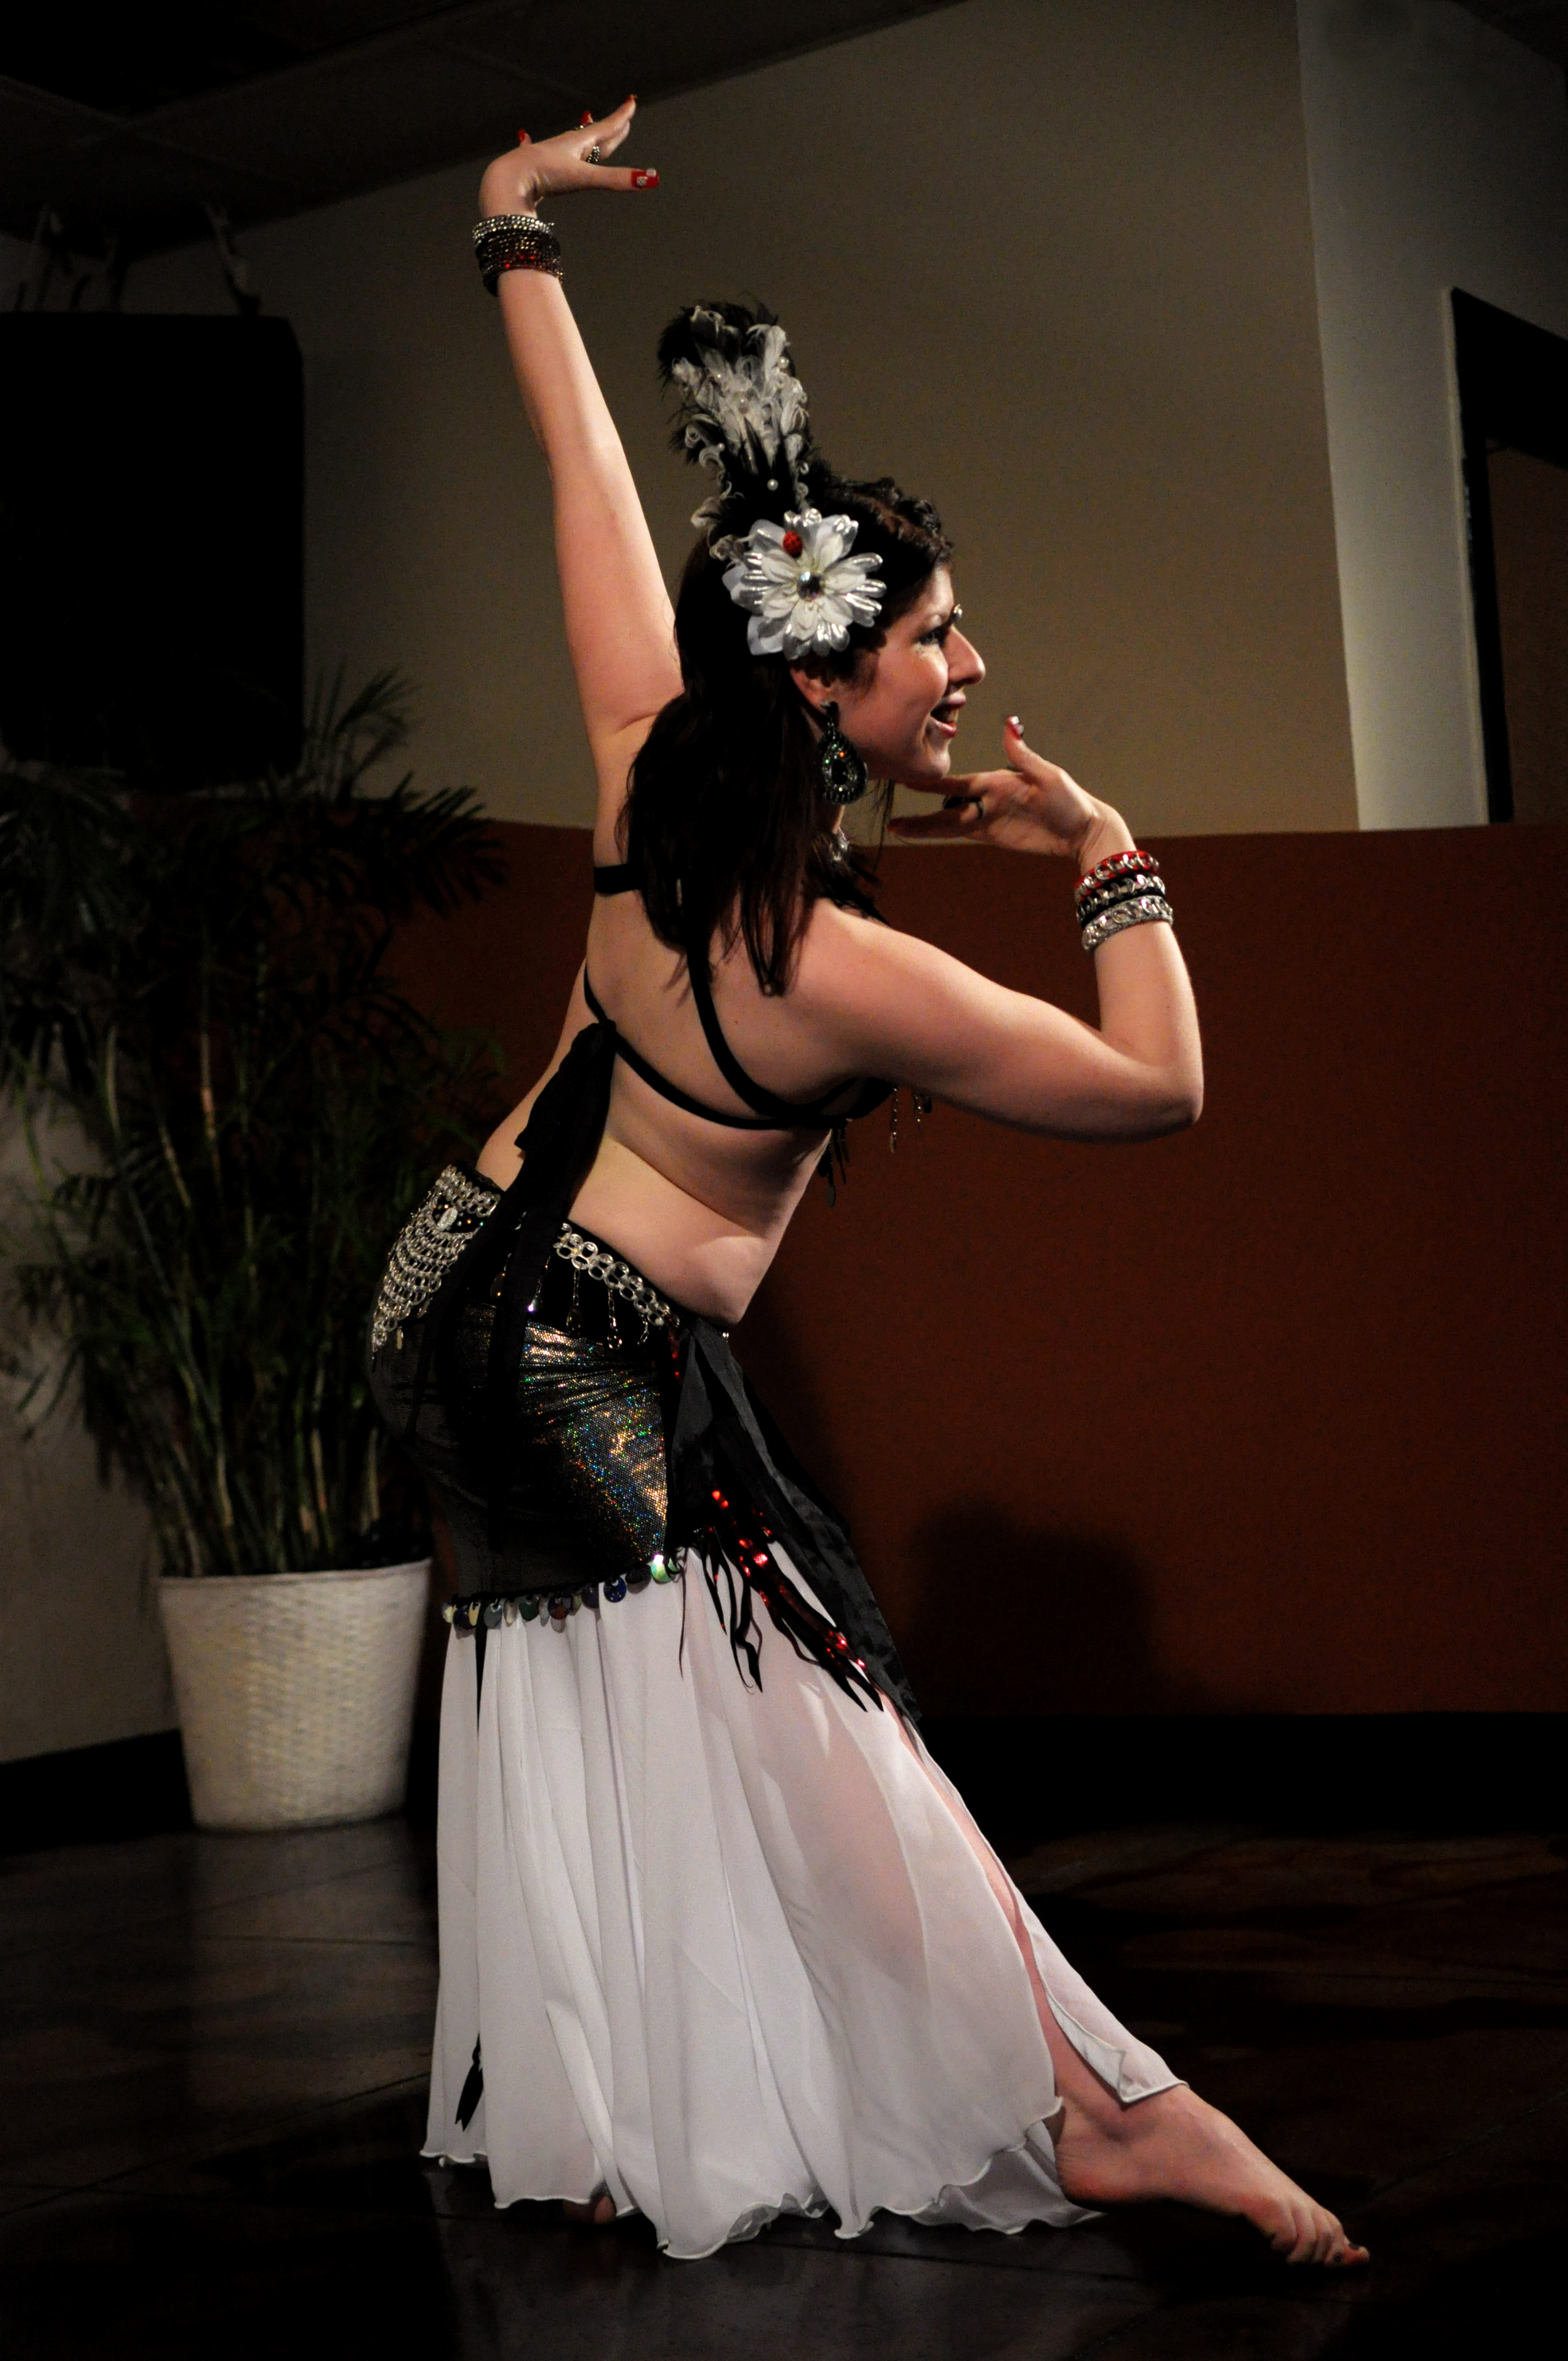 Amani showing grace & poise while bellydancing @ Mythos restaurant in Clearwater, FL.